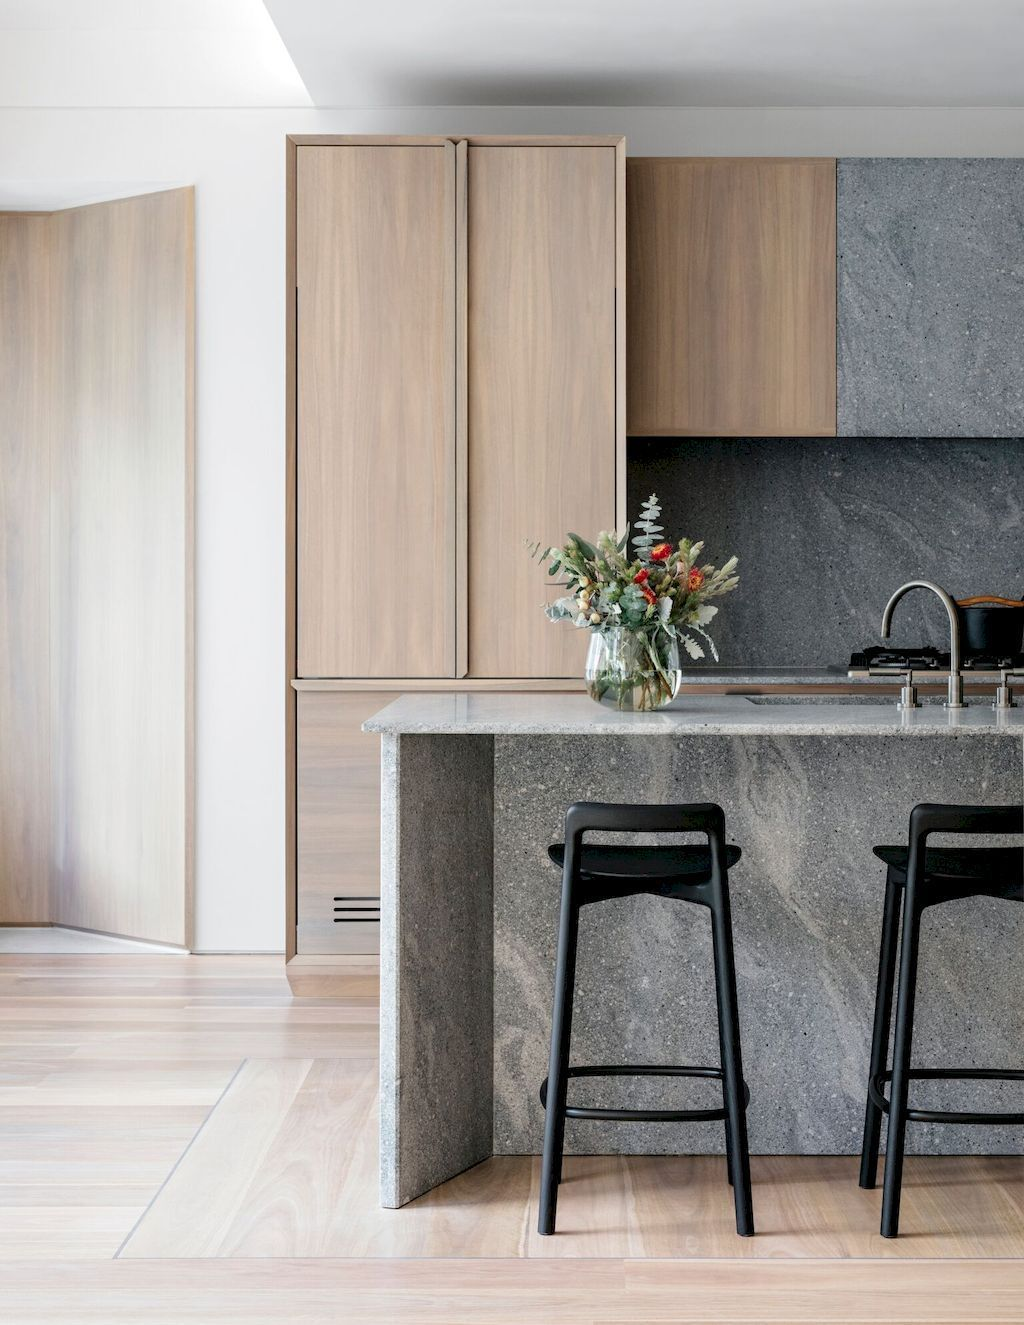 Cool cool modern apartment kitchen decor ideas roomadness